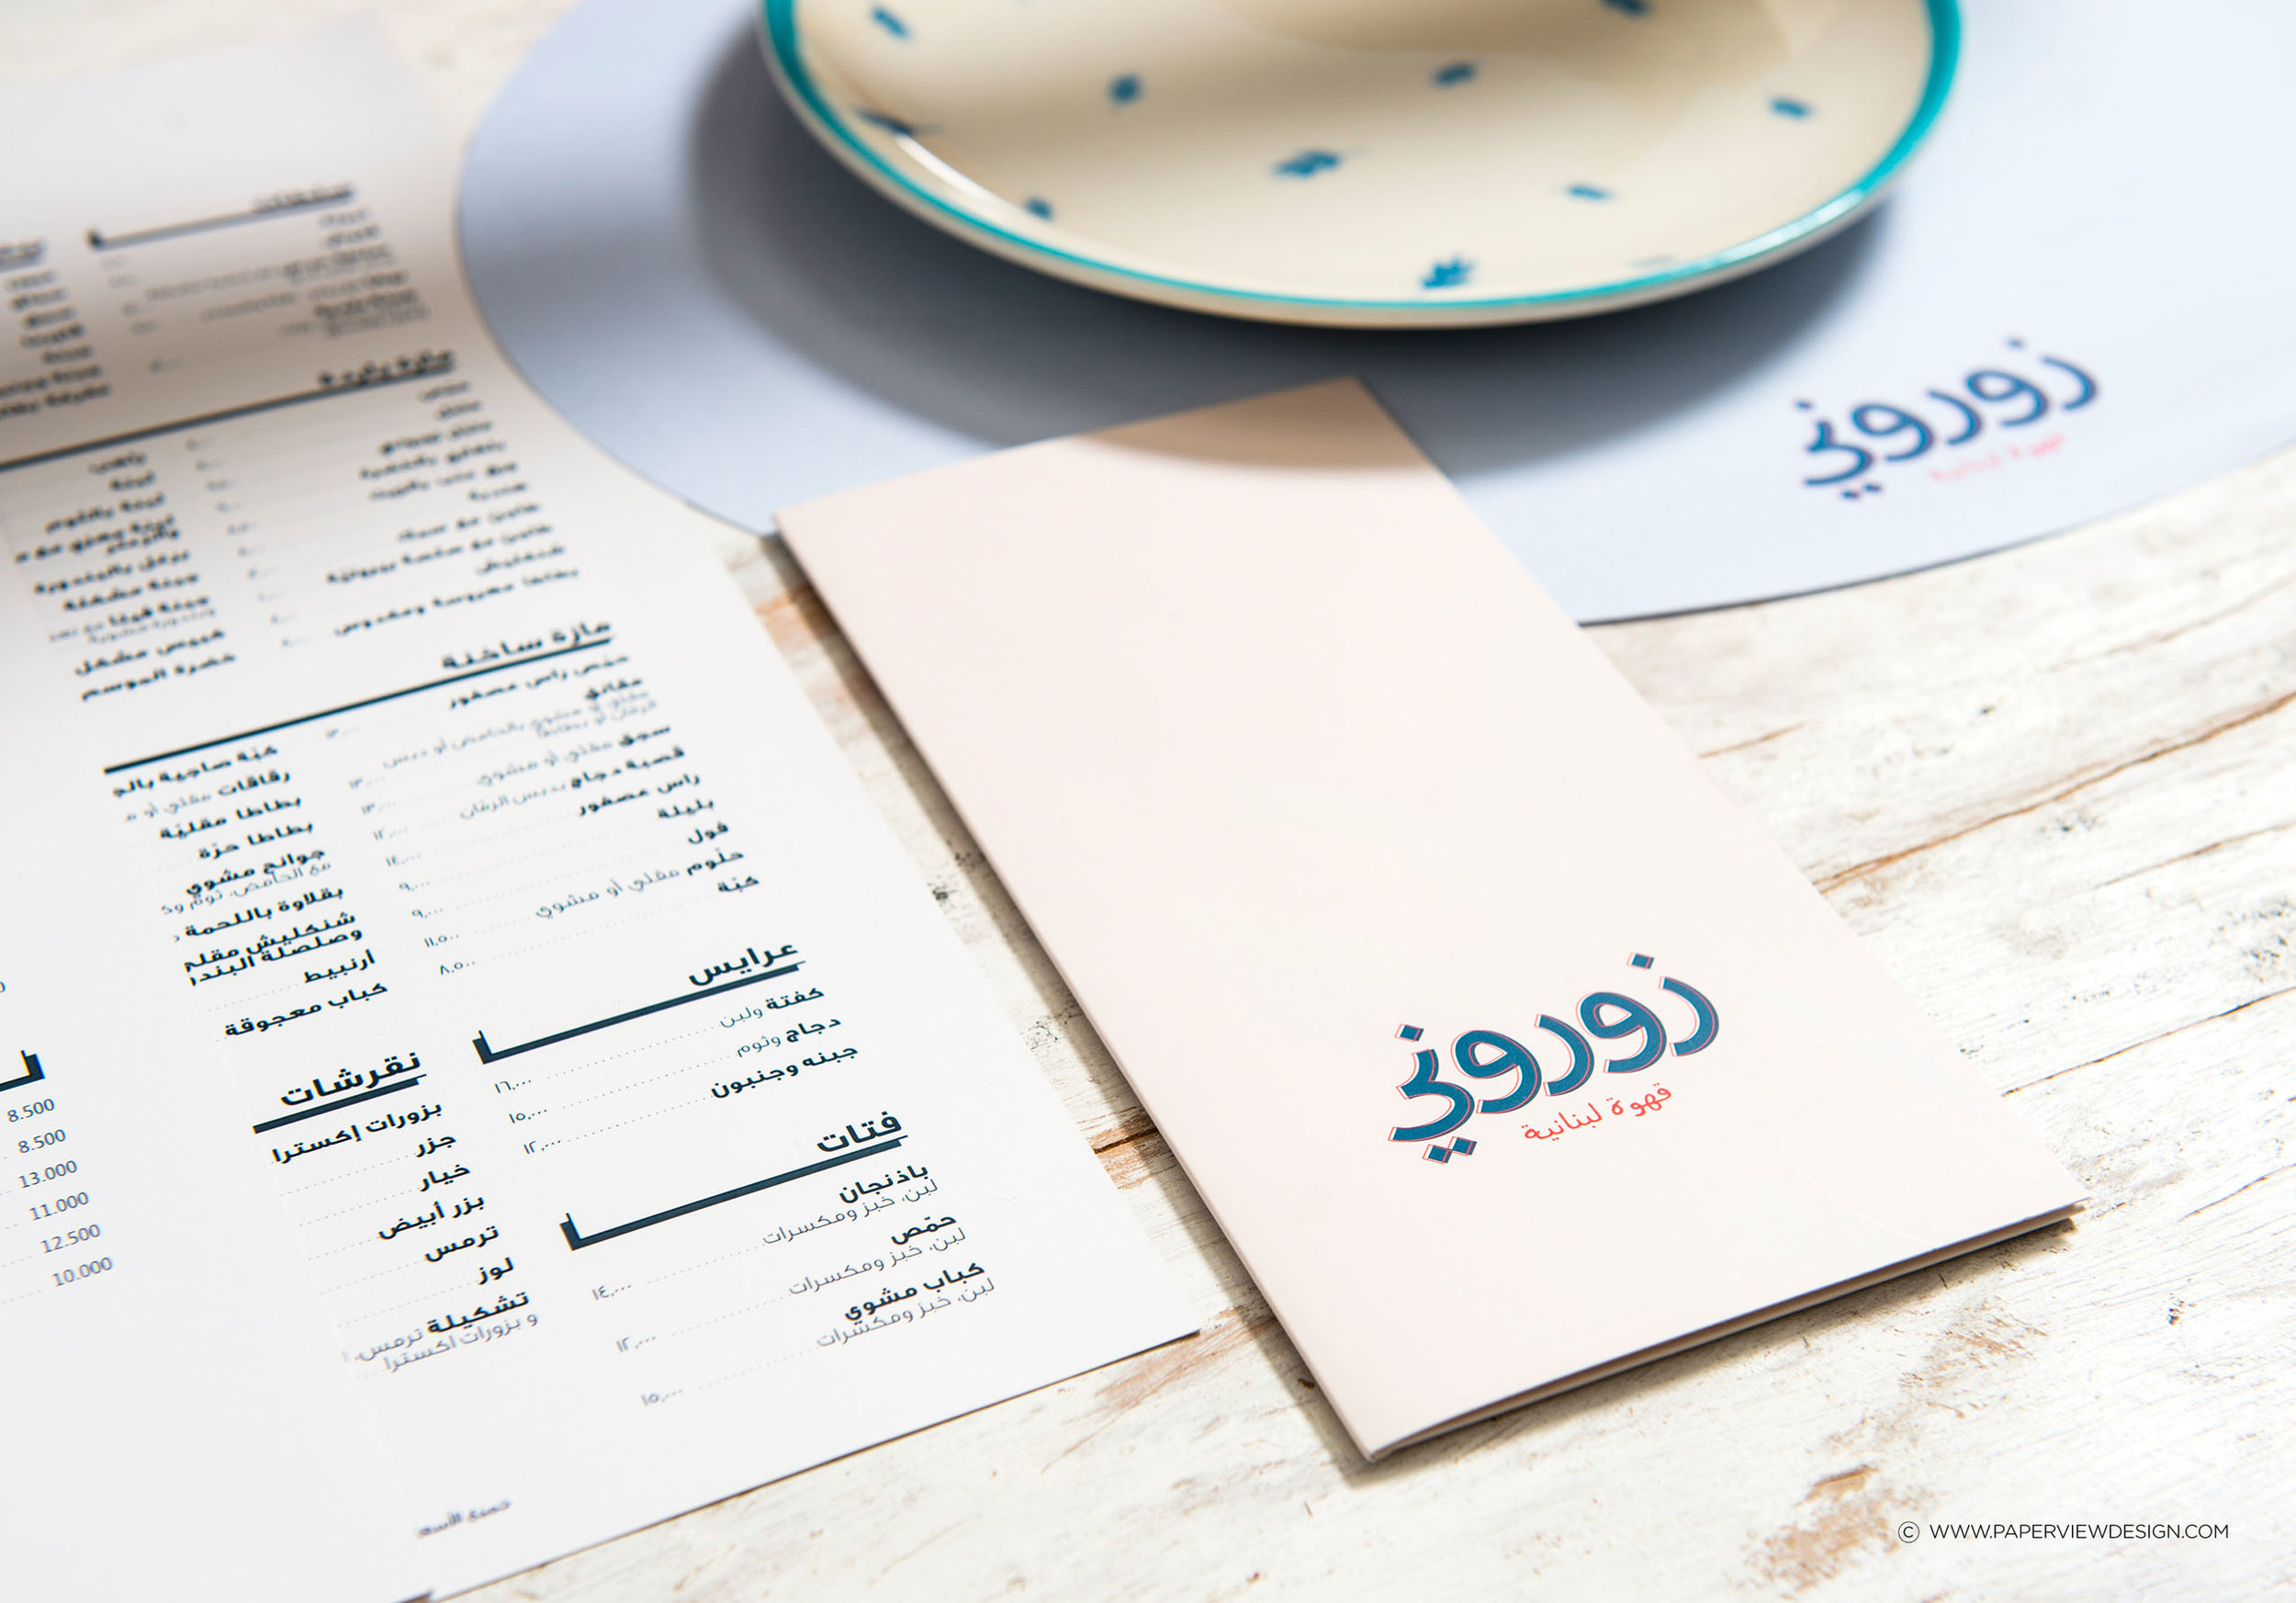 Zuruni-Bill-Holder-Restaurant-Design-Branding